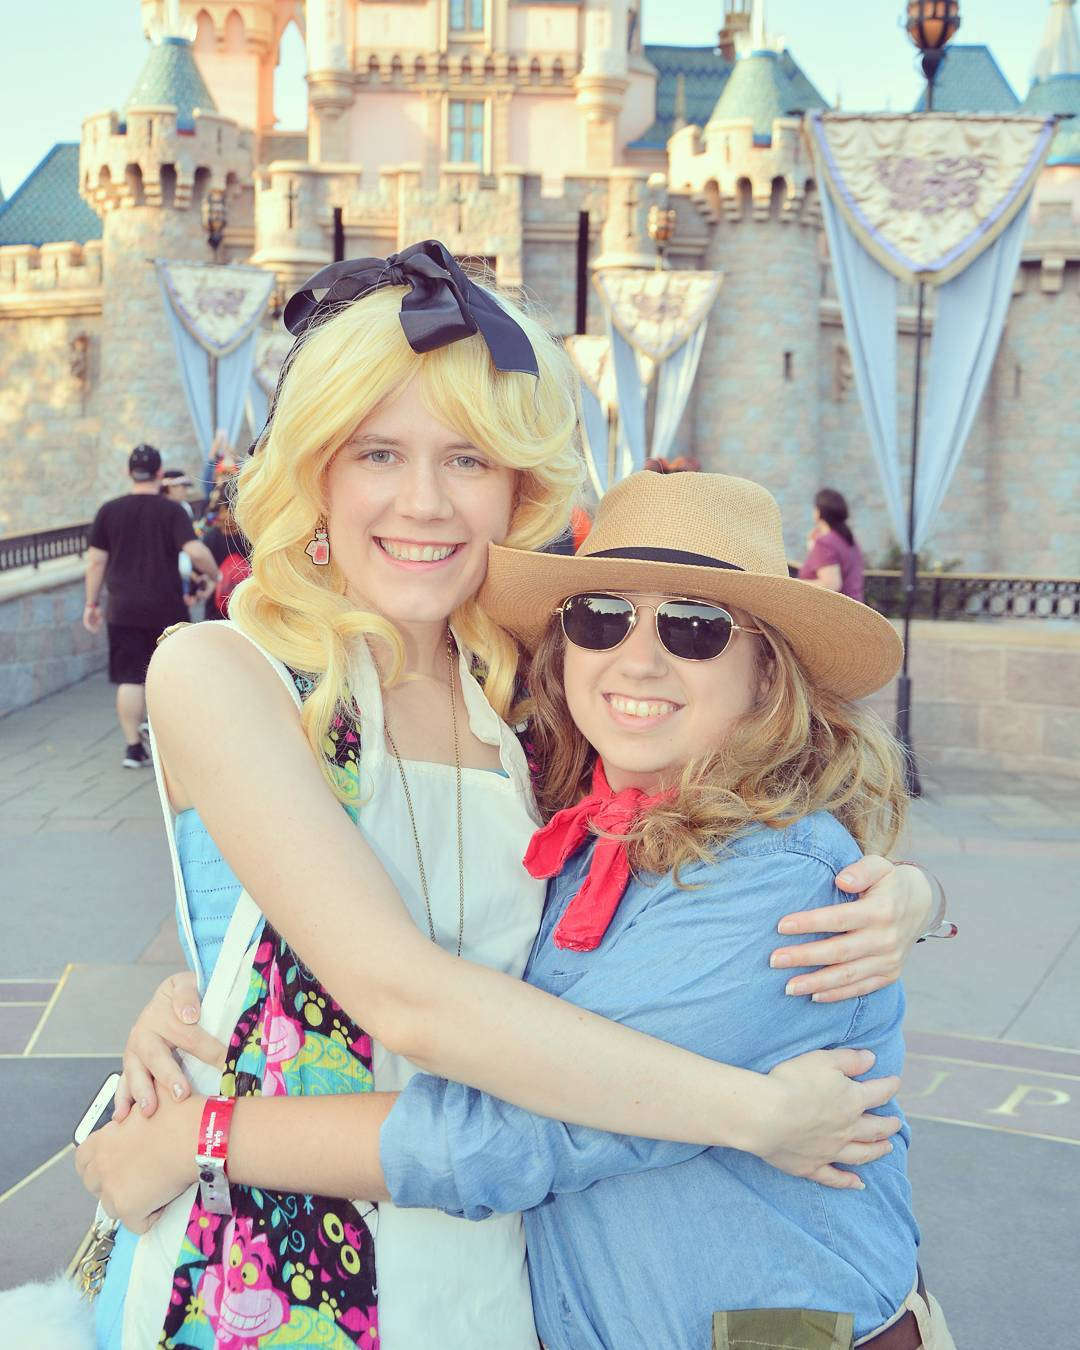 Julia and I rocked the Disneyland Halloween party as Alice in Wonderland and Dr. Alan Grant from Jurassic Park